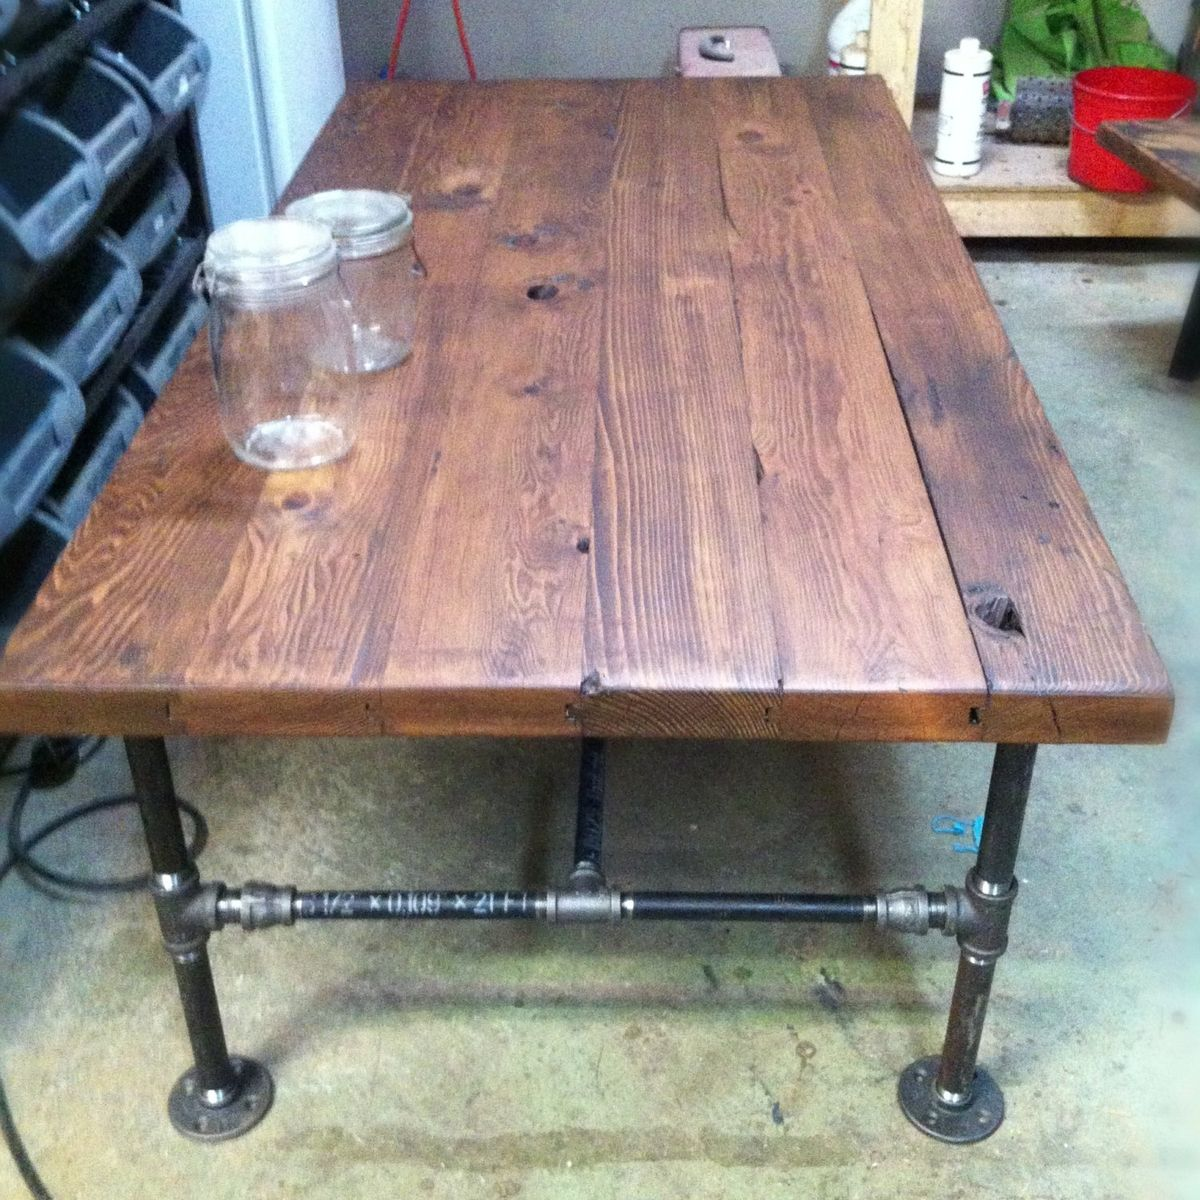 Engrossing Custom Made Barn Wood Cast Iron Pipe Coffee Table By Reclaimed Woodcustom Furniture Custom Made Barn Wood Cast Iron Pipe Coffee Table By Reclaimed Cast Iron Table Legs Sydney Cast Iron Tabl houzz-03 Cast Iron Table Legs